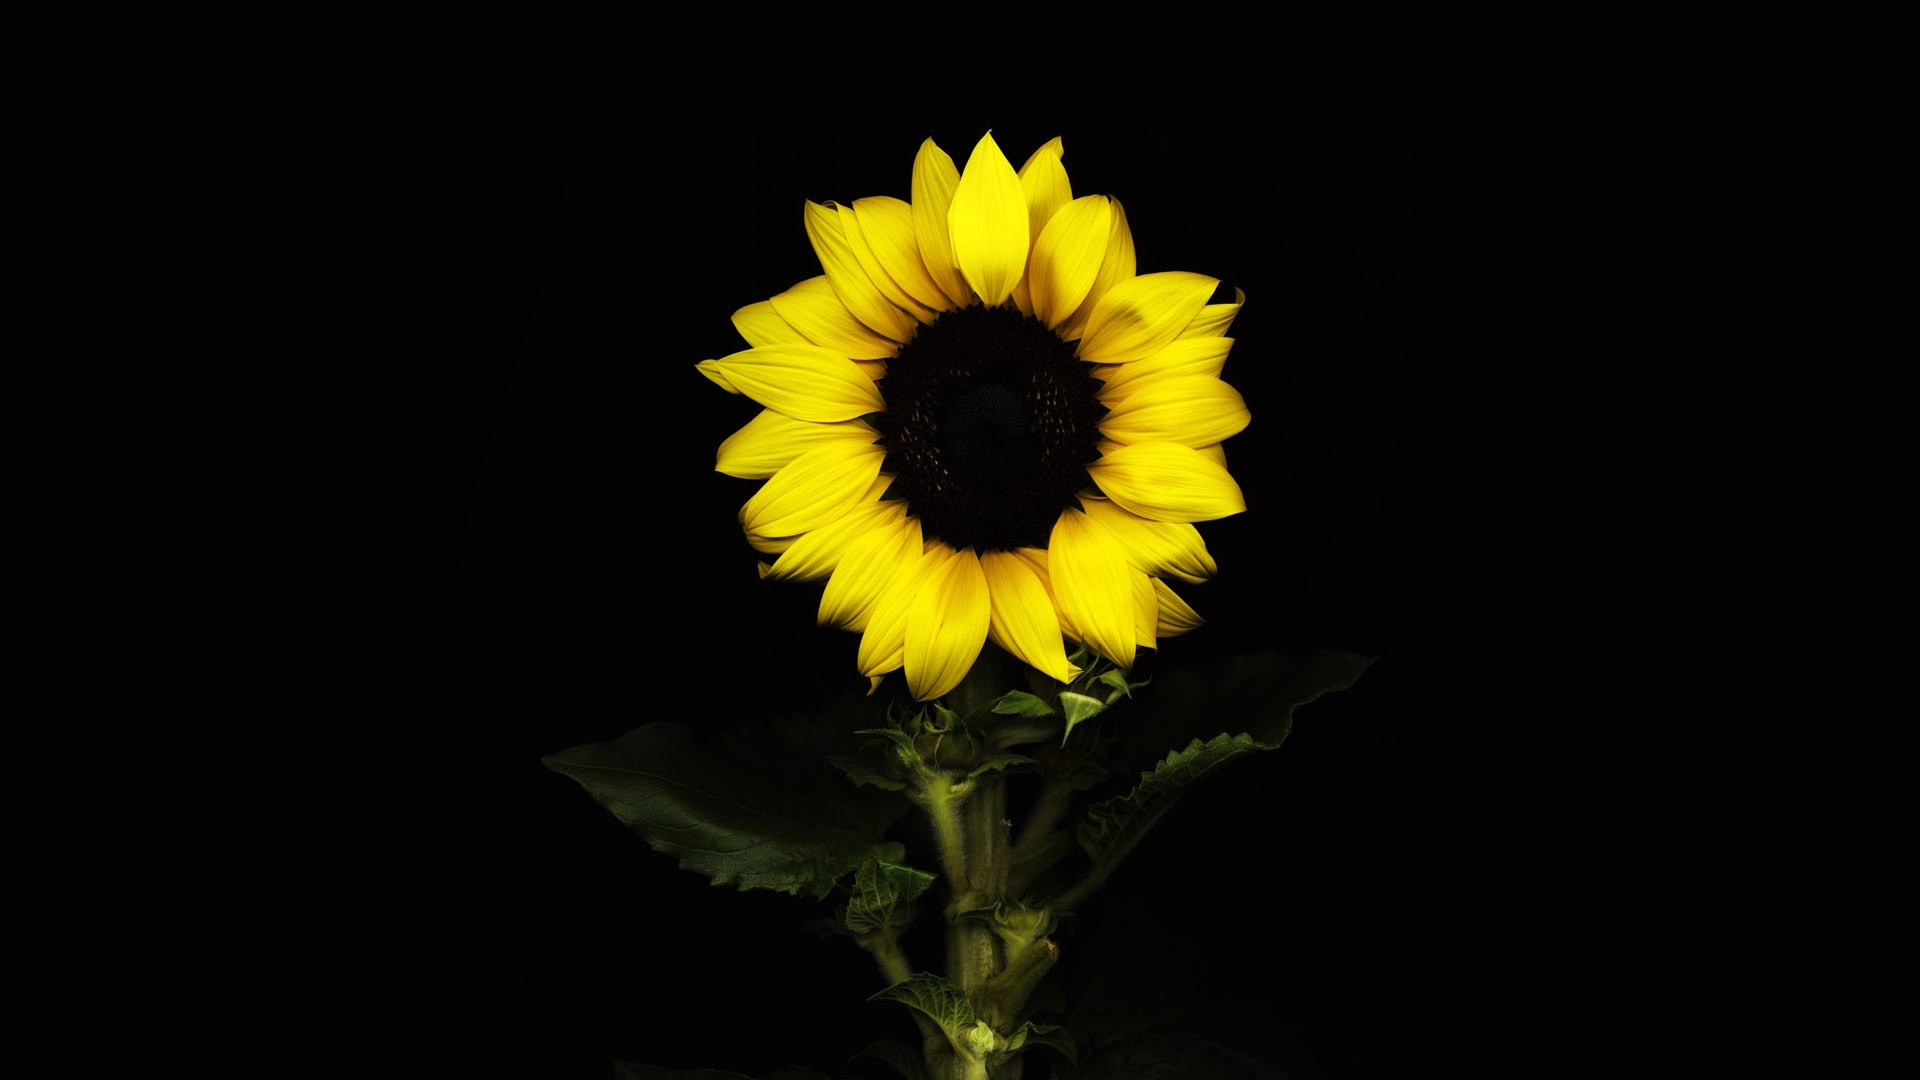 Download wallpaper 1920x1080 sunflower, black background, with ...